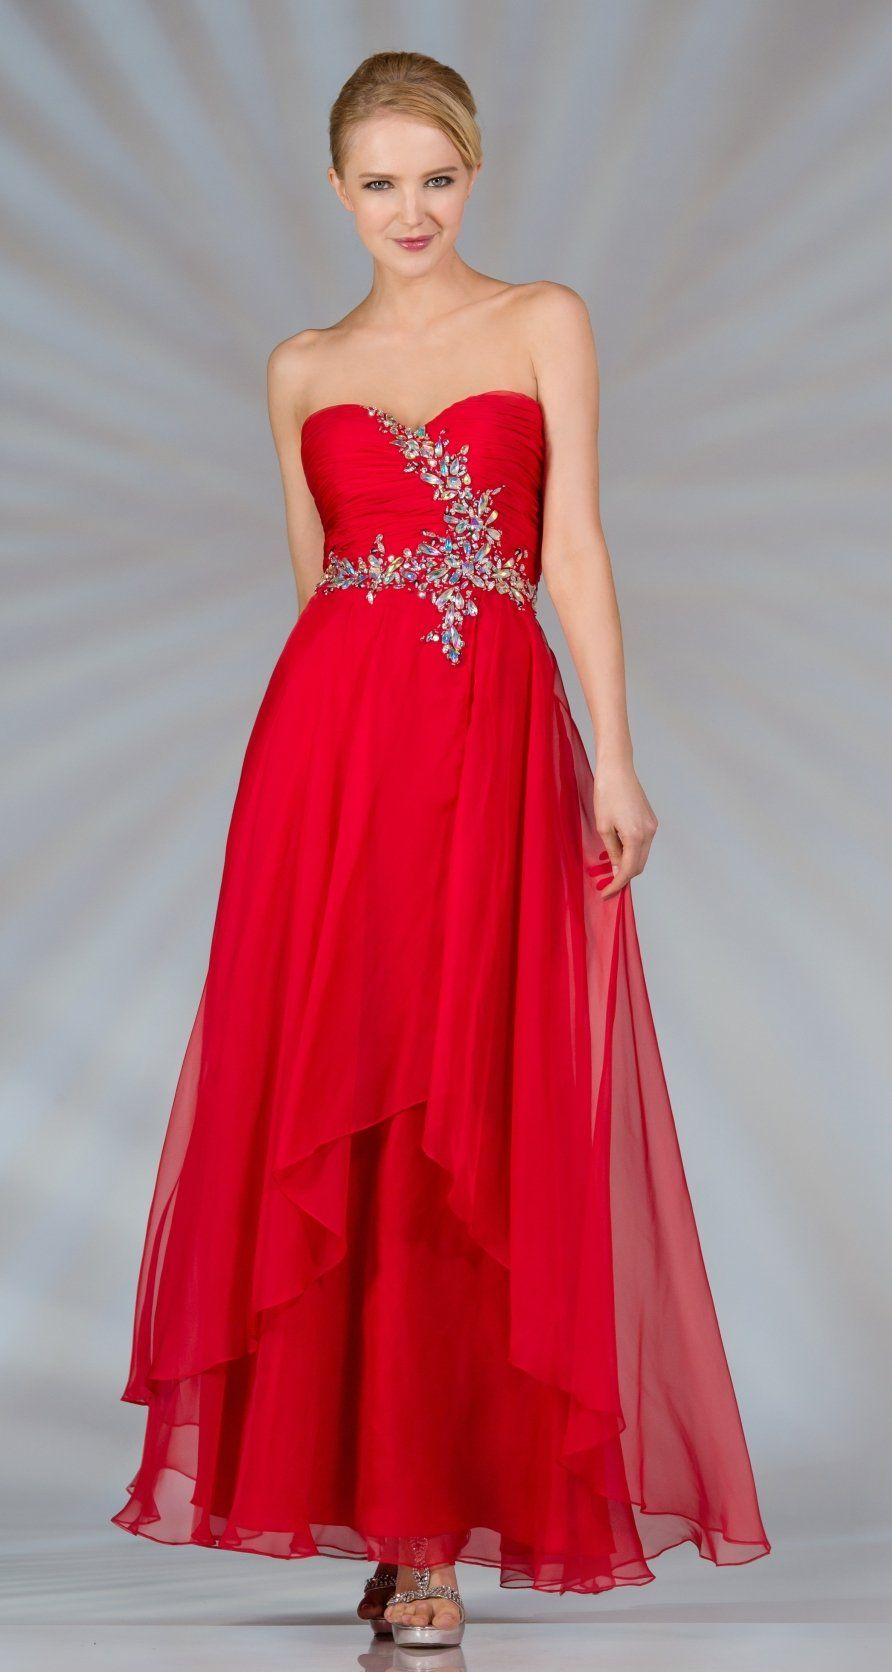 Double layer chiffon red formal gown strapless long large jewels